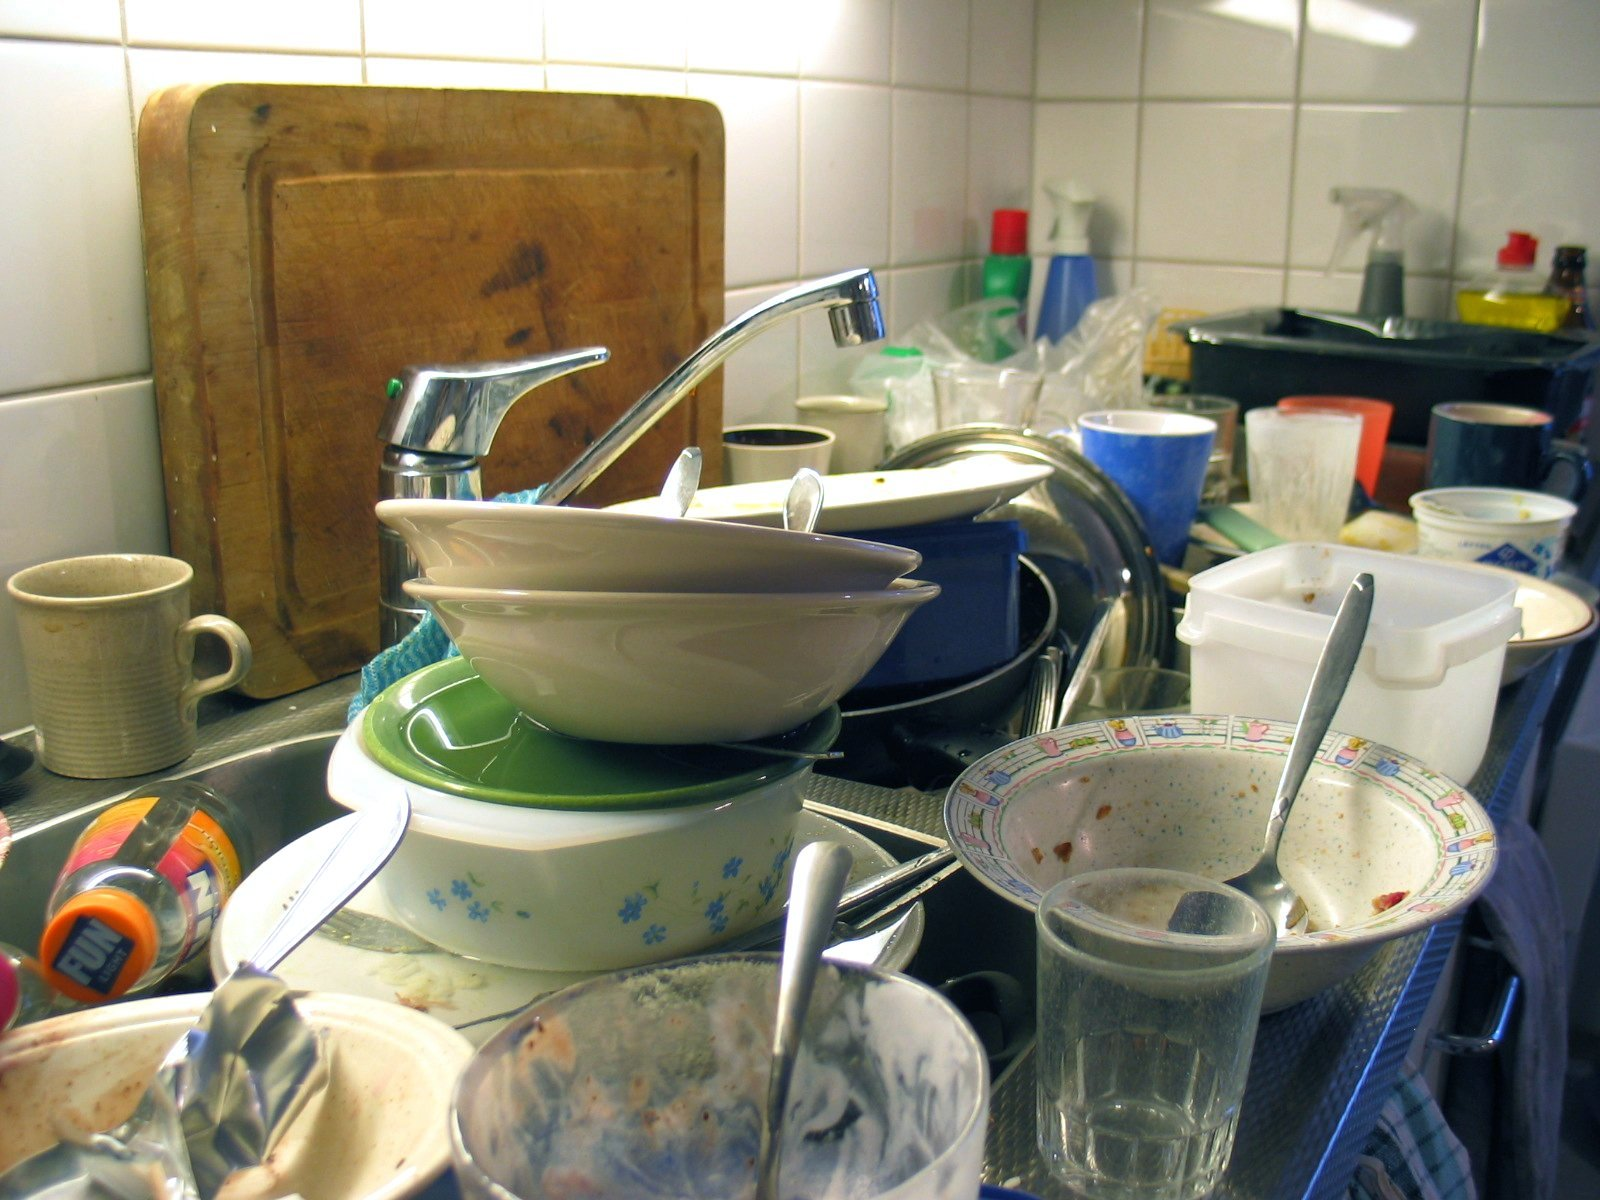 Dirty_dishes.jpg